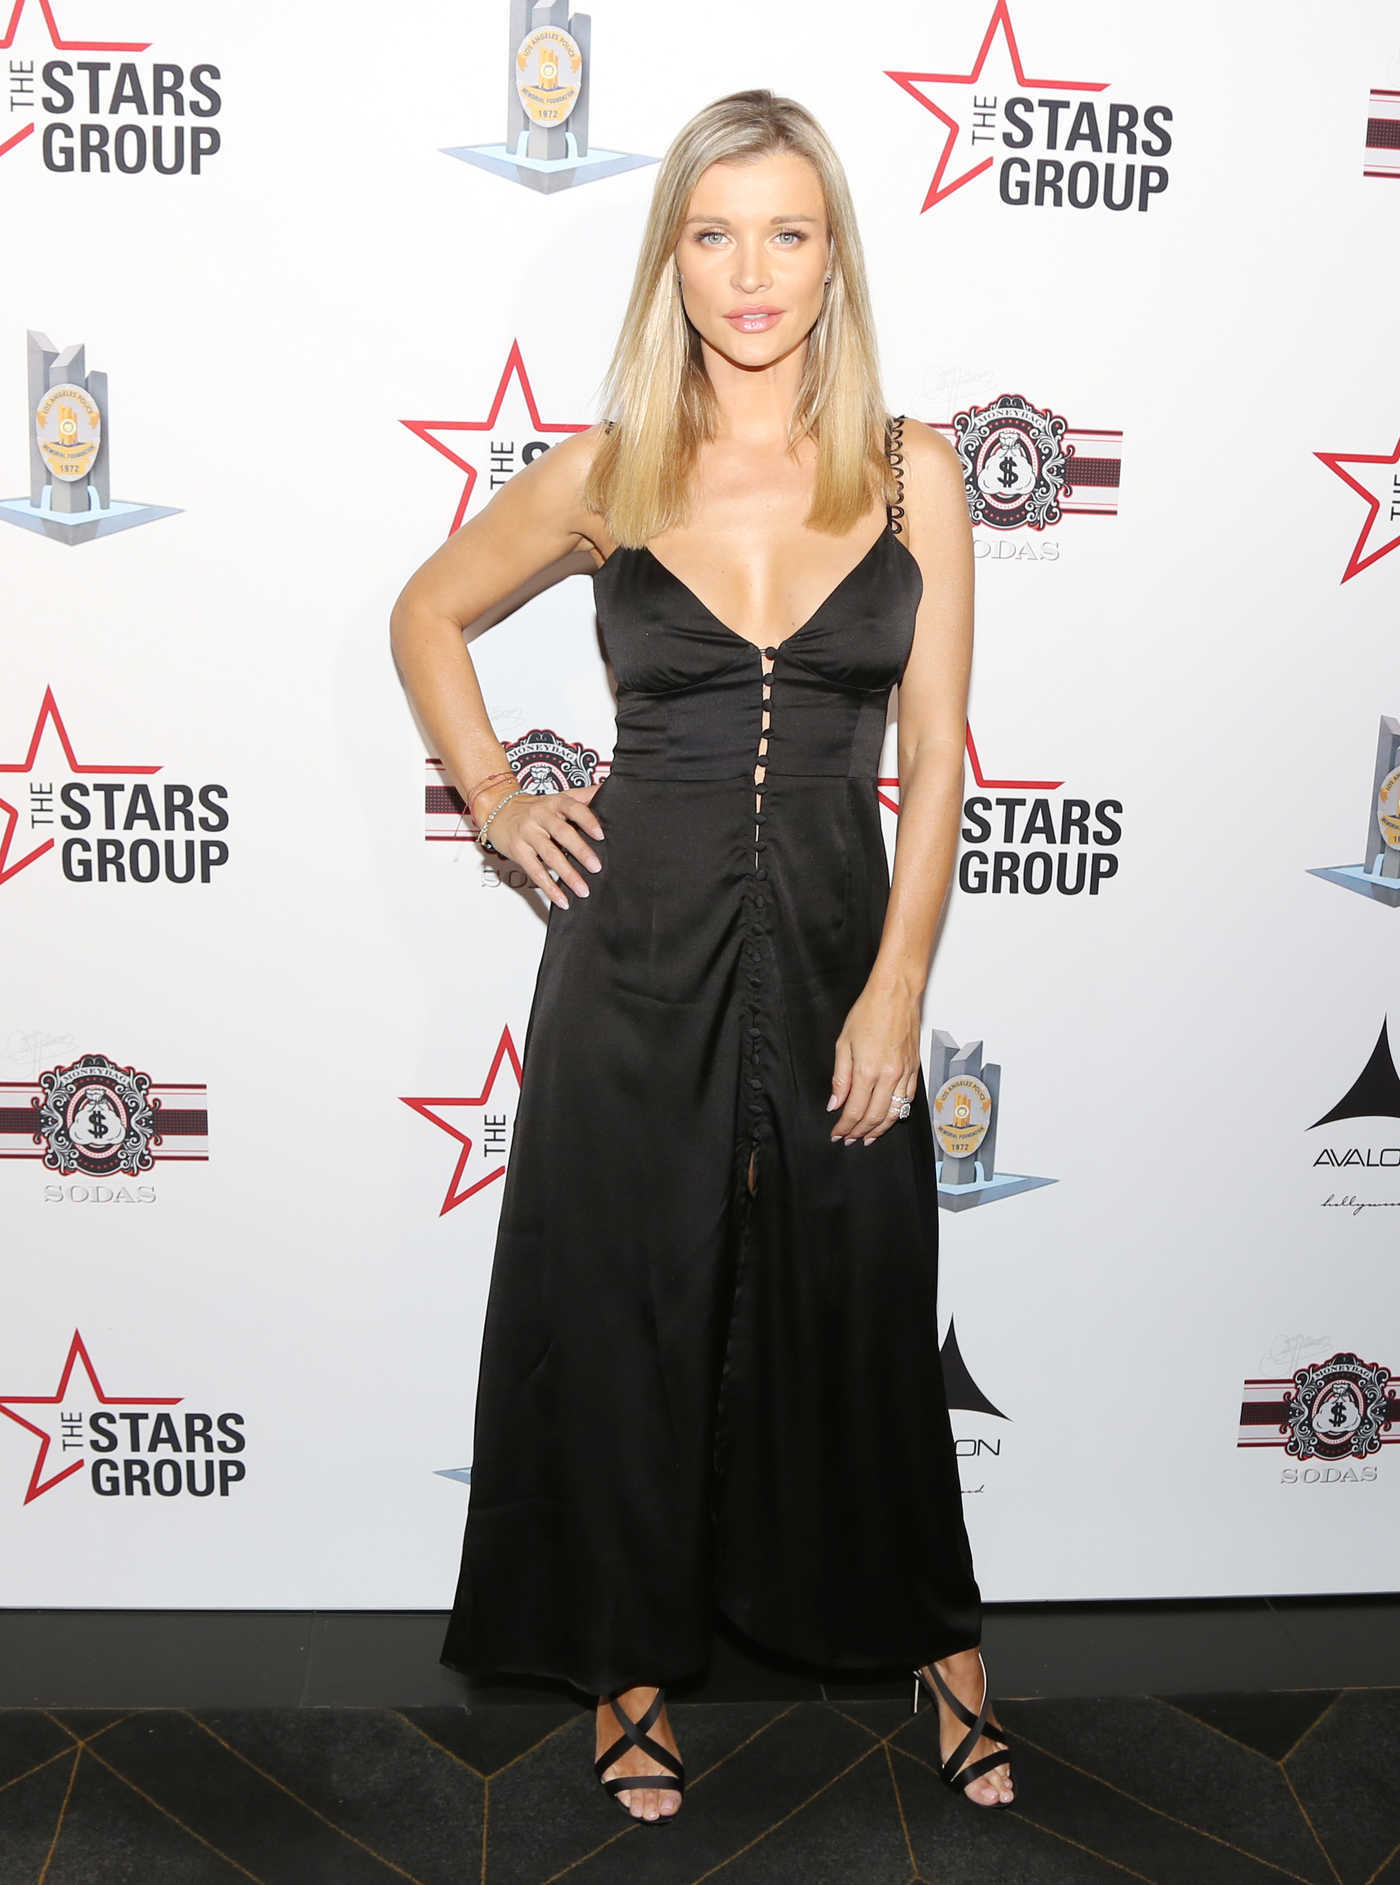 Joanna Krupa Attends Heroes for Heroes: LAPD Memorial Foundation Celebrity Poker Tournament in Los Angeles 11/10/2018